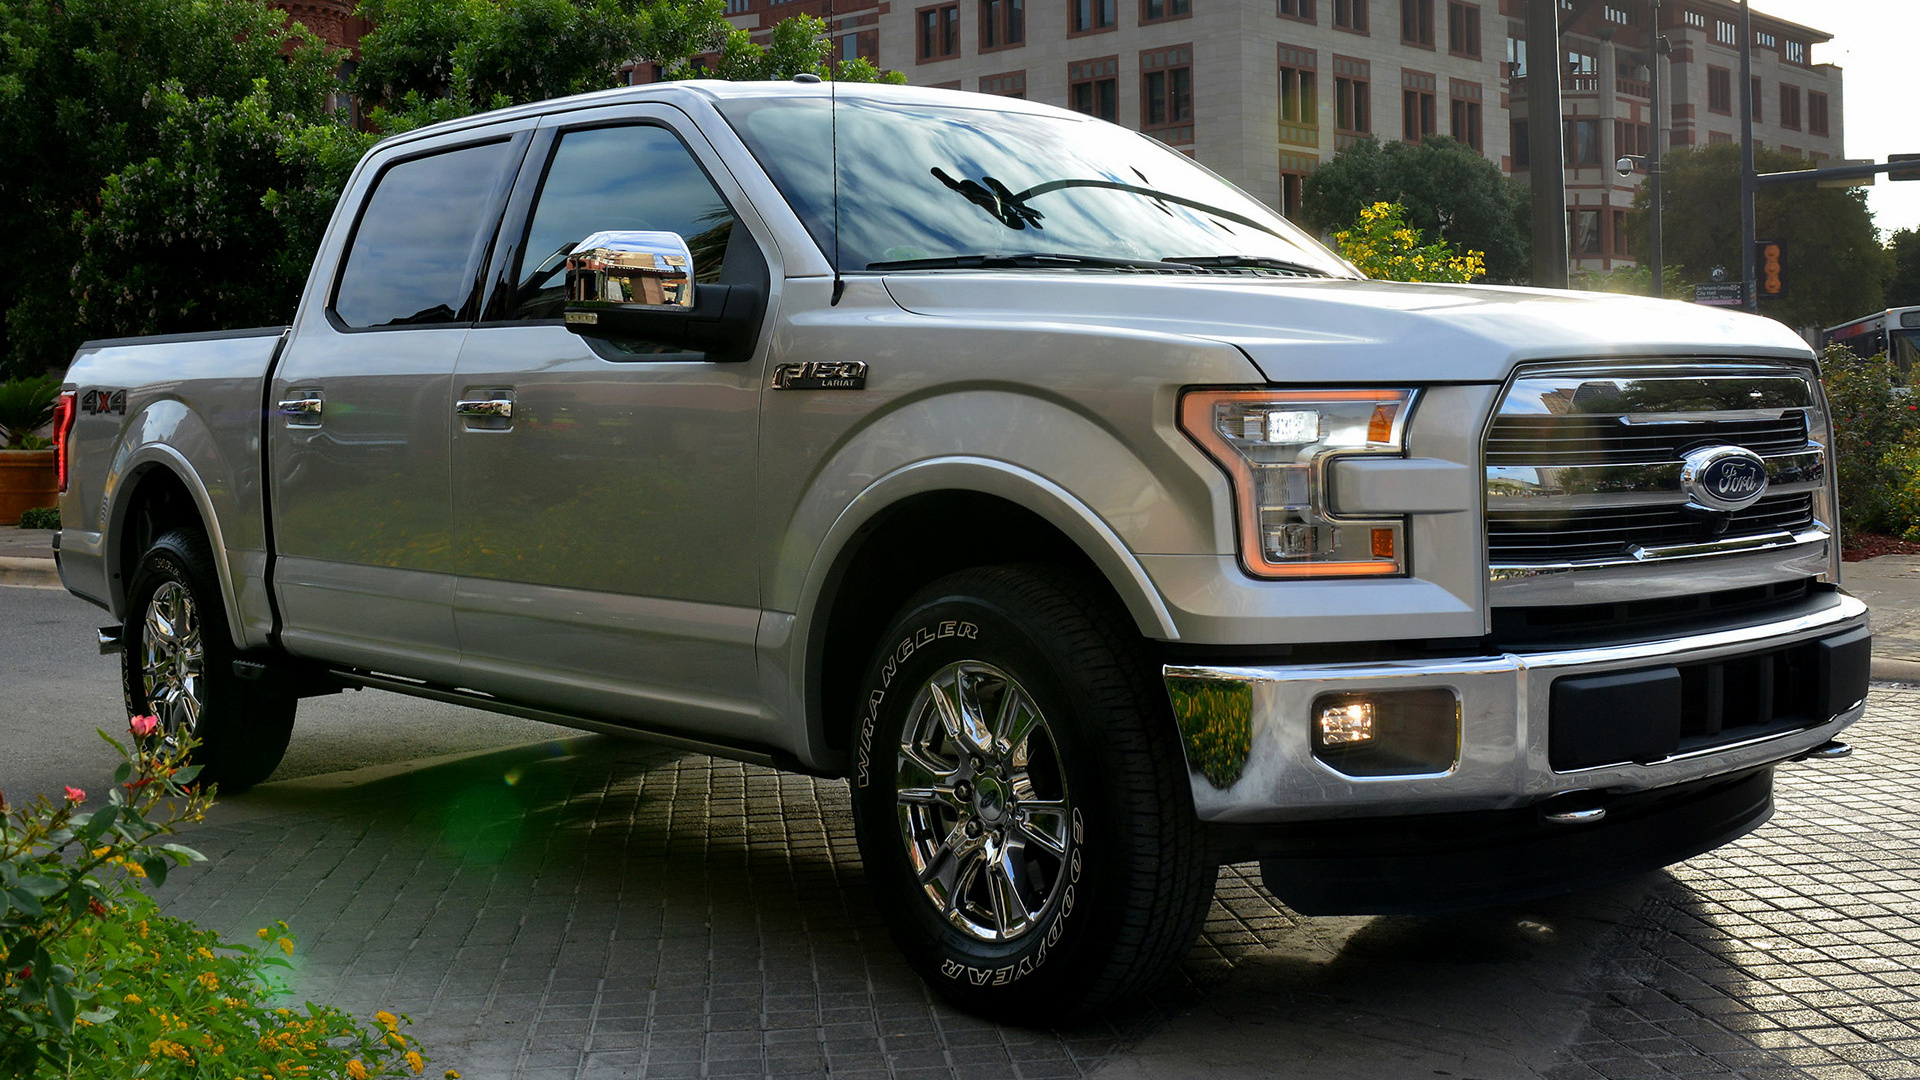 2017 Ford F 150 Lariat >> Ford F-150 Lariat SuperCrew (2015) Wallpapers and HD Images - Car Pixel